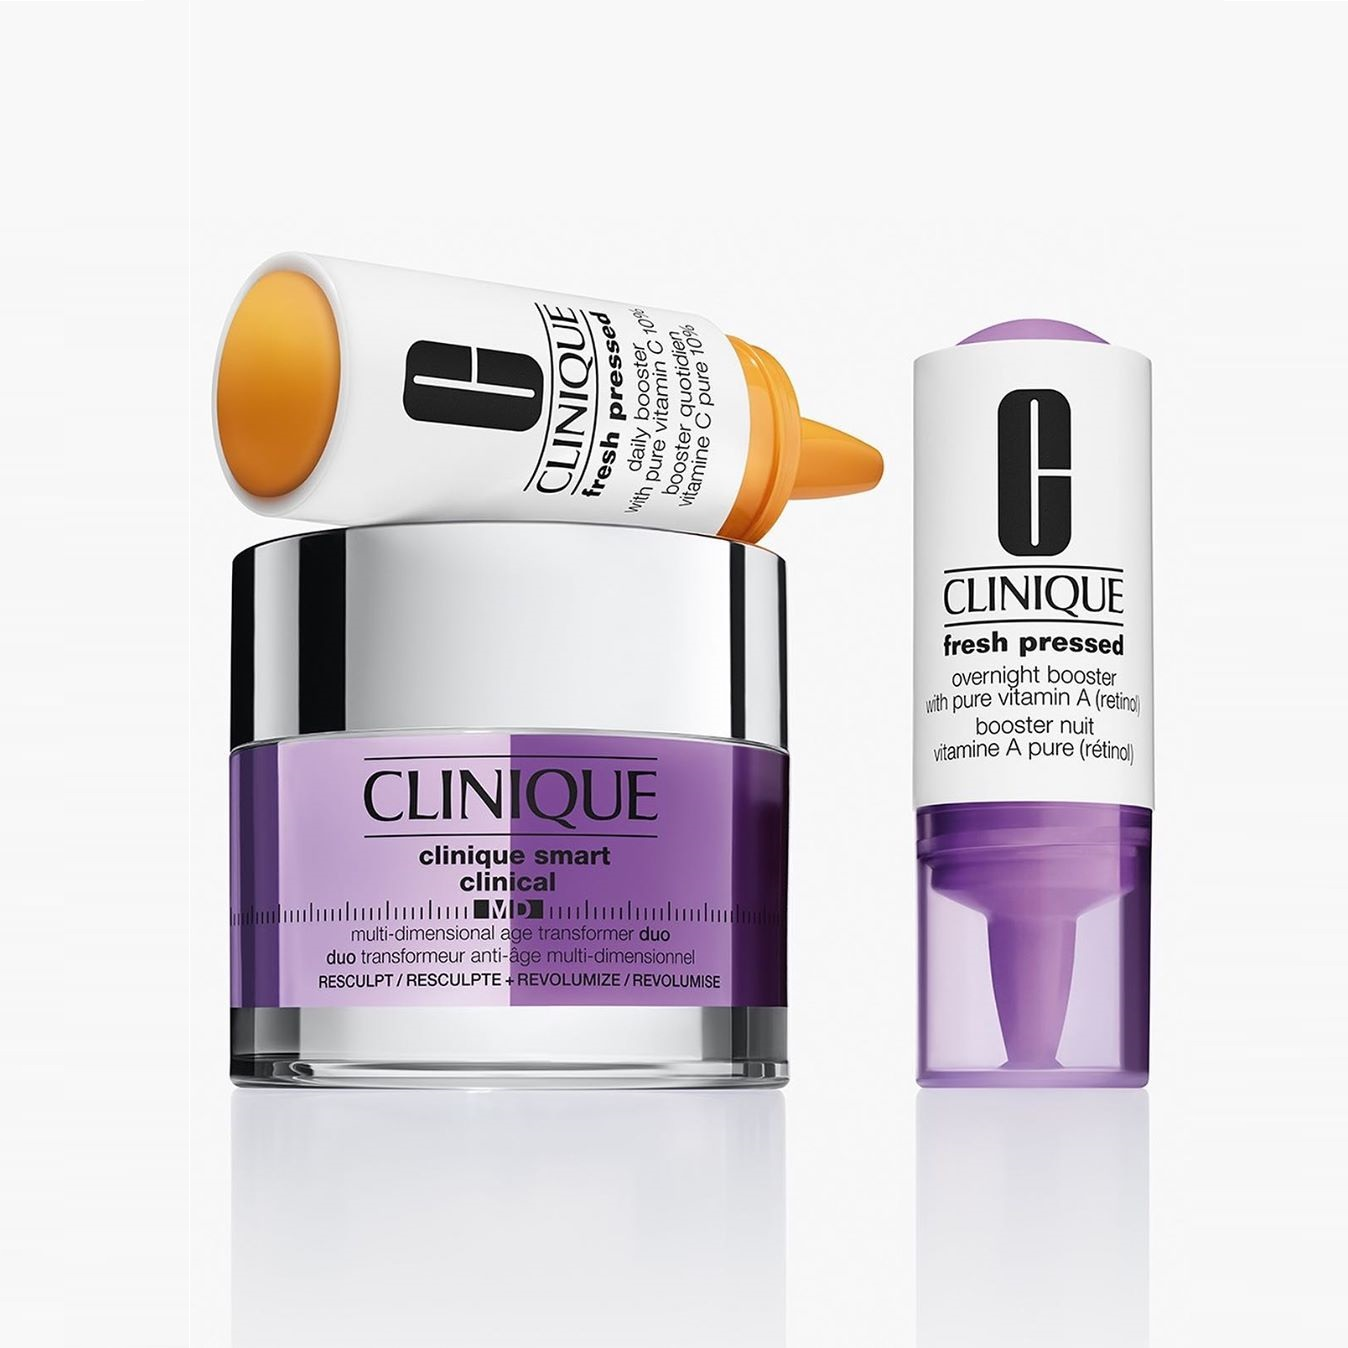 Nordstrom:Clinique 倩碧天才小黄油,透明啫喱面霜等等